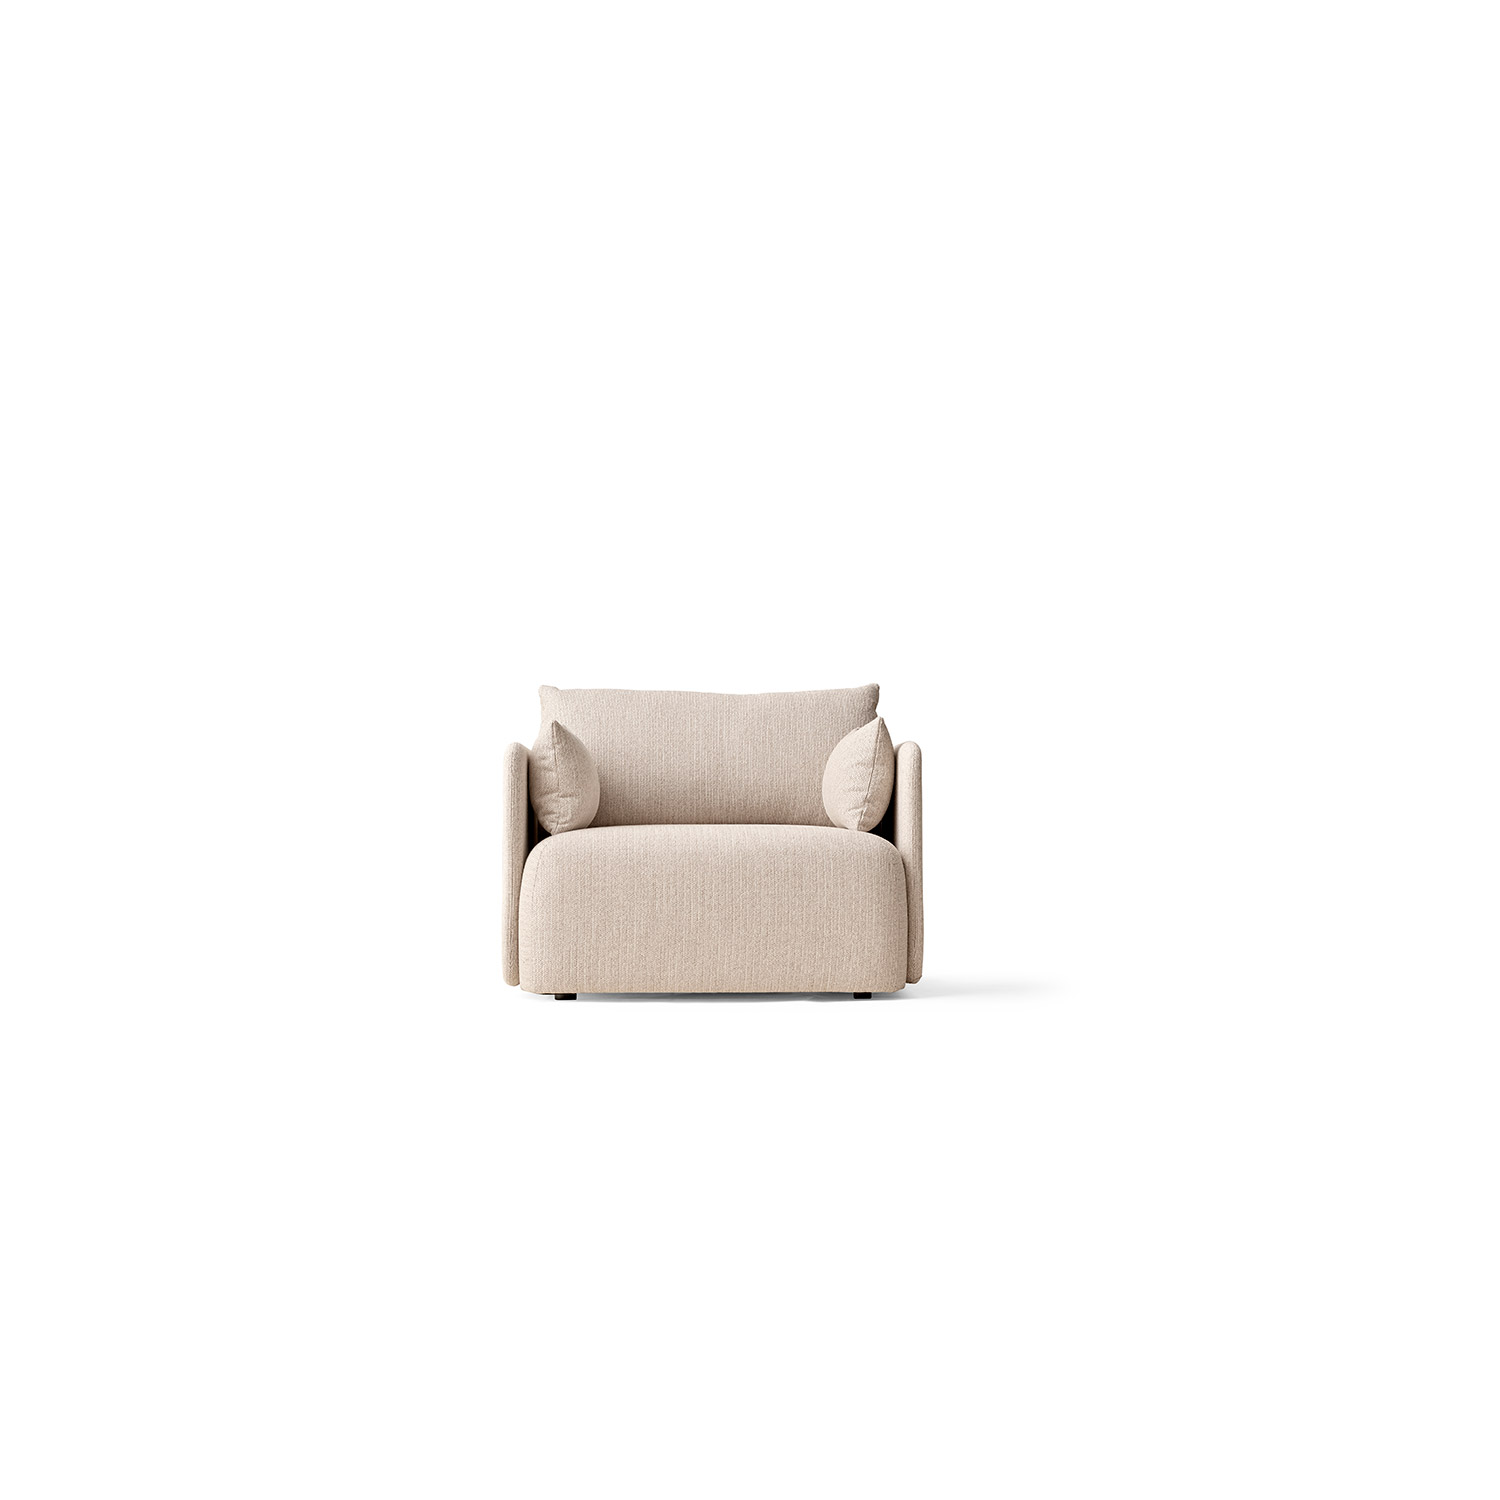 Offset Sofa 1 Seater, Savanna 202